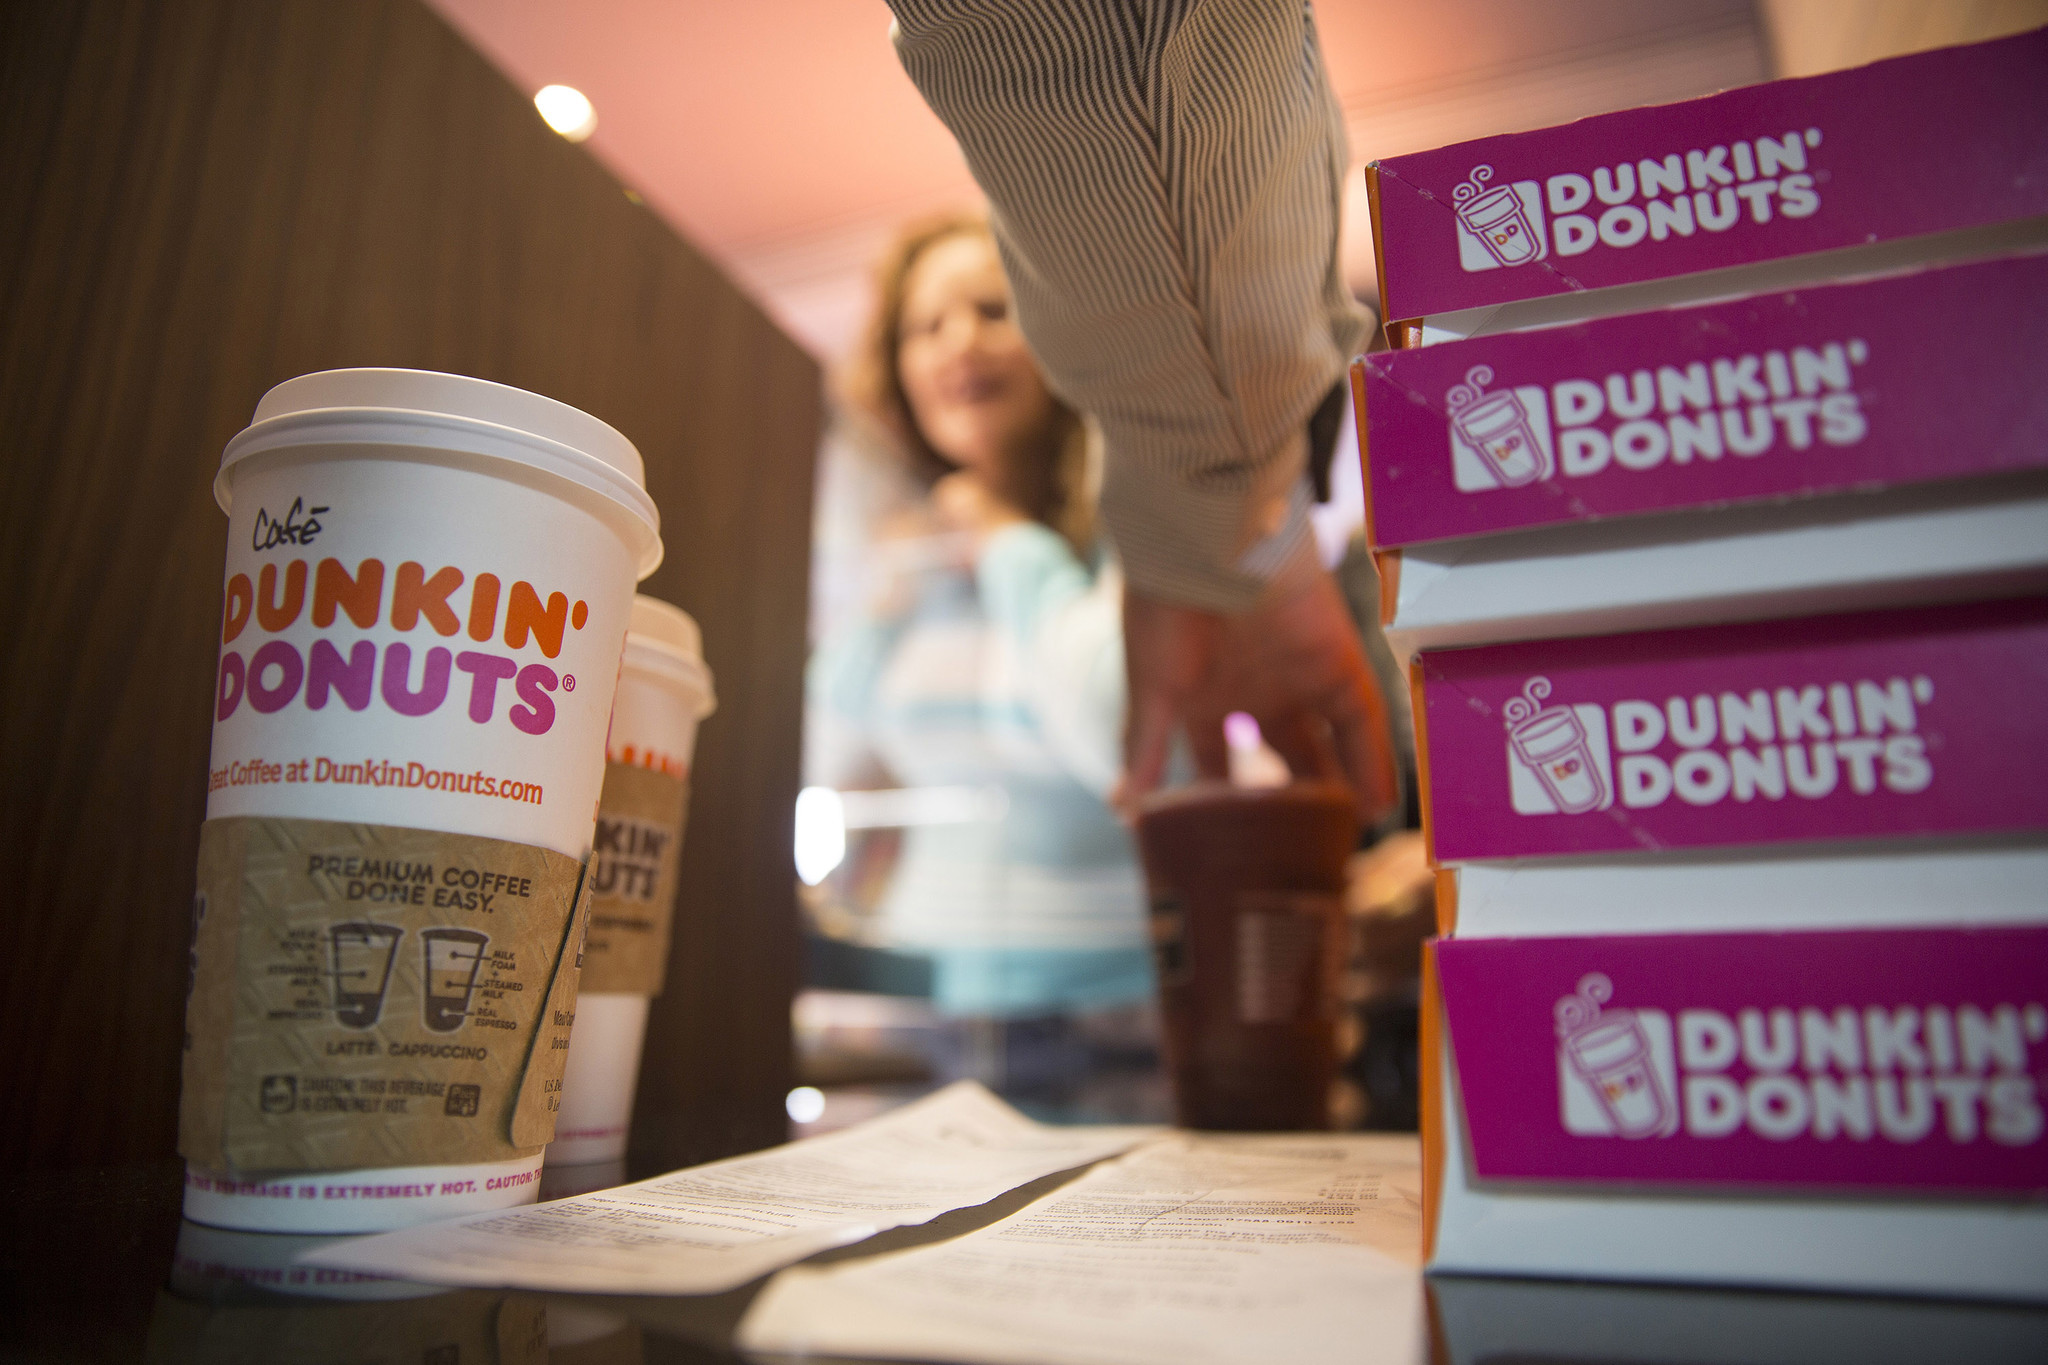 Ravens enter new partnership with Dunkin' Donuts ...